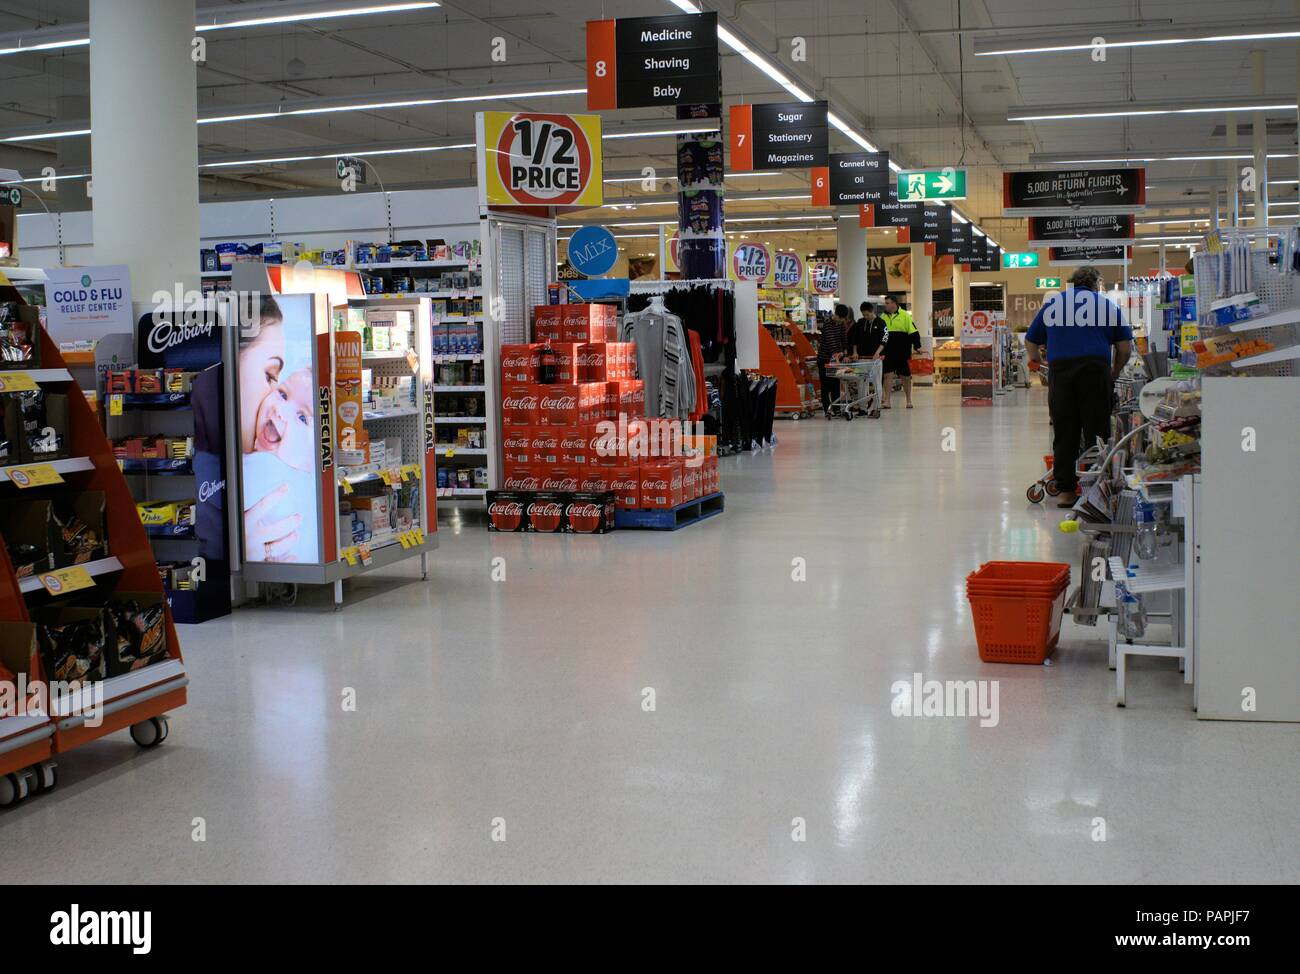 Shoppers at Coles supermarket in Port Macquarie coastal town of